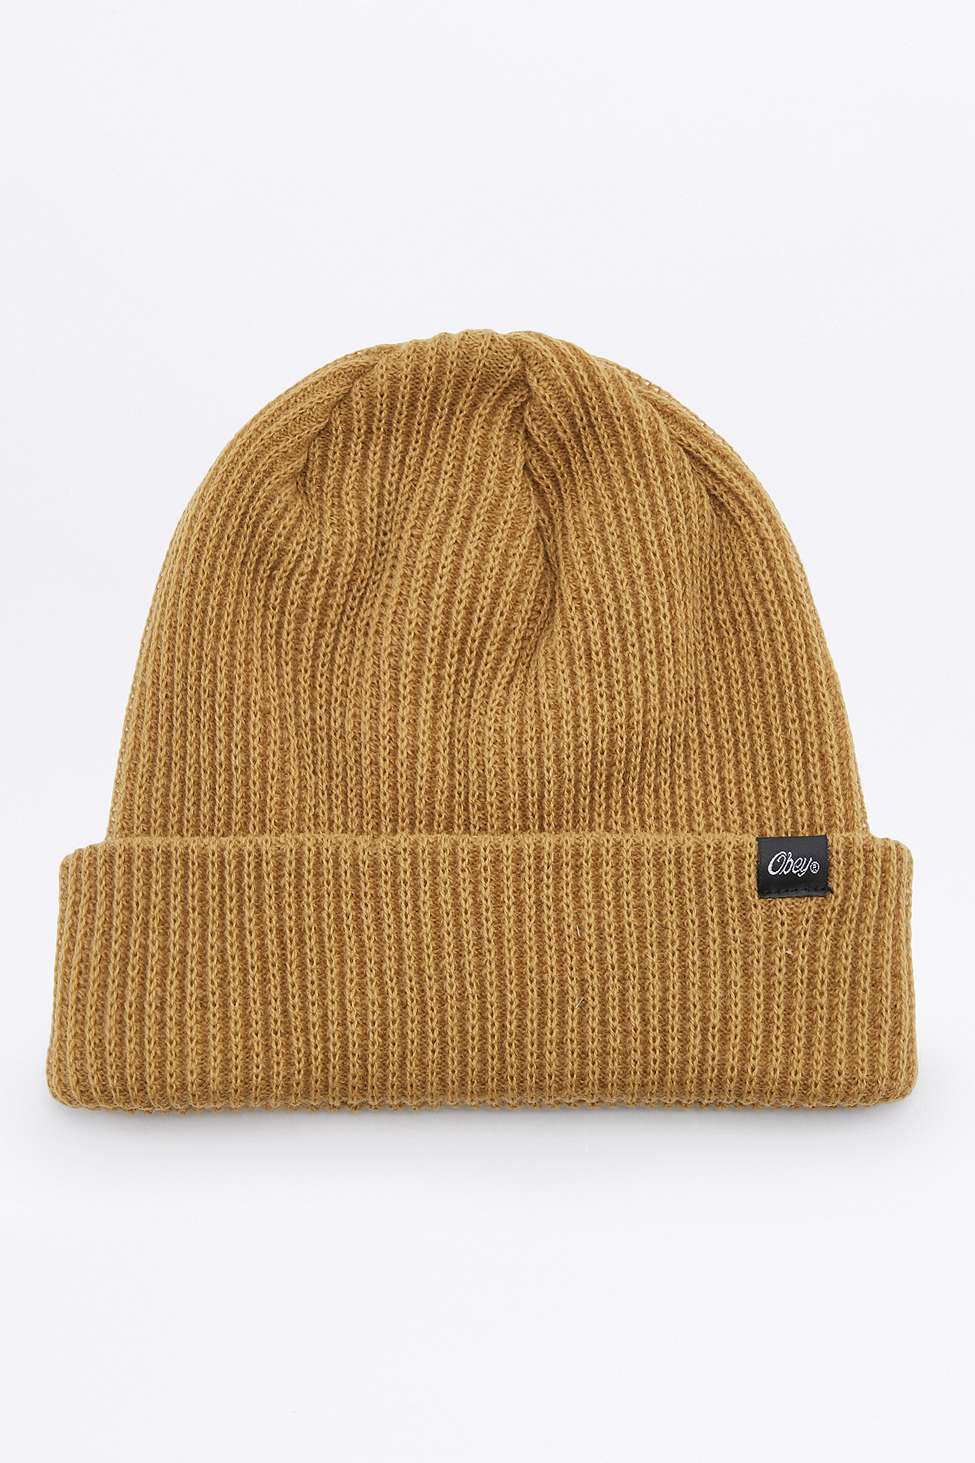 102f2807a24ff Obey Caster Gold Beanie in Natural for Men - Lyst